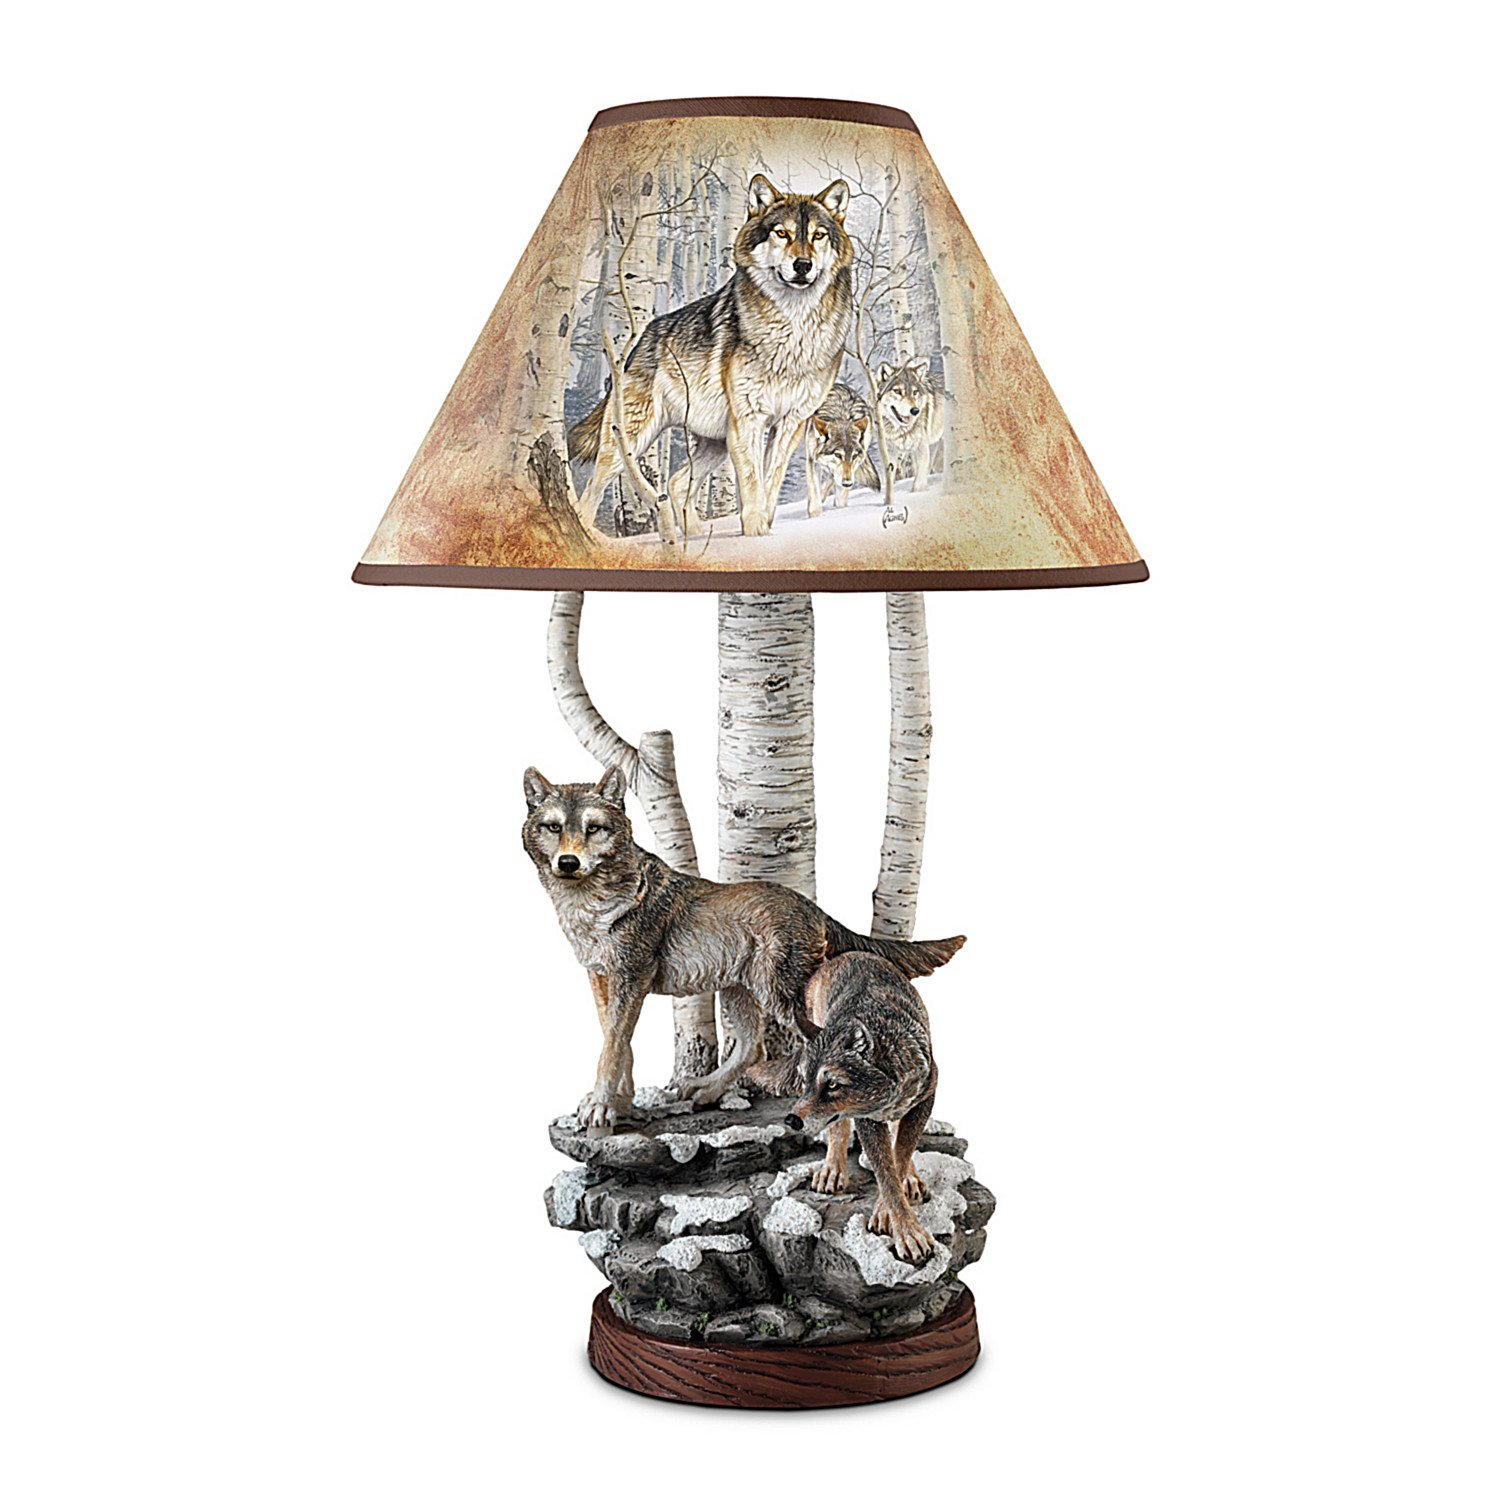 Al Agnew Spirit of the Forest Wolf Art Table Lamp by The Bradford Exchange by Bradford Exchange